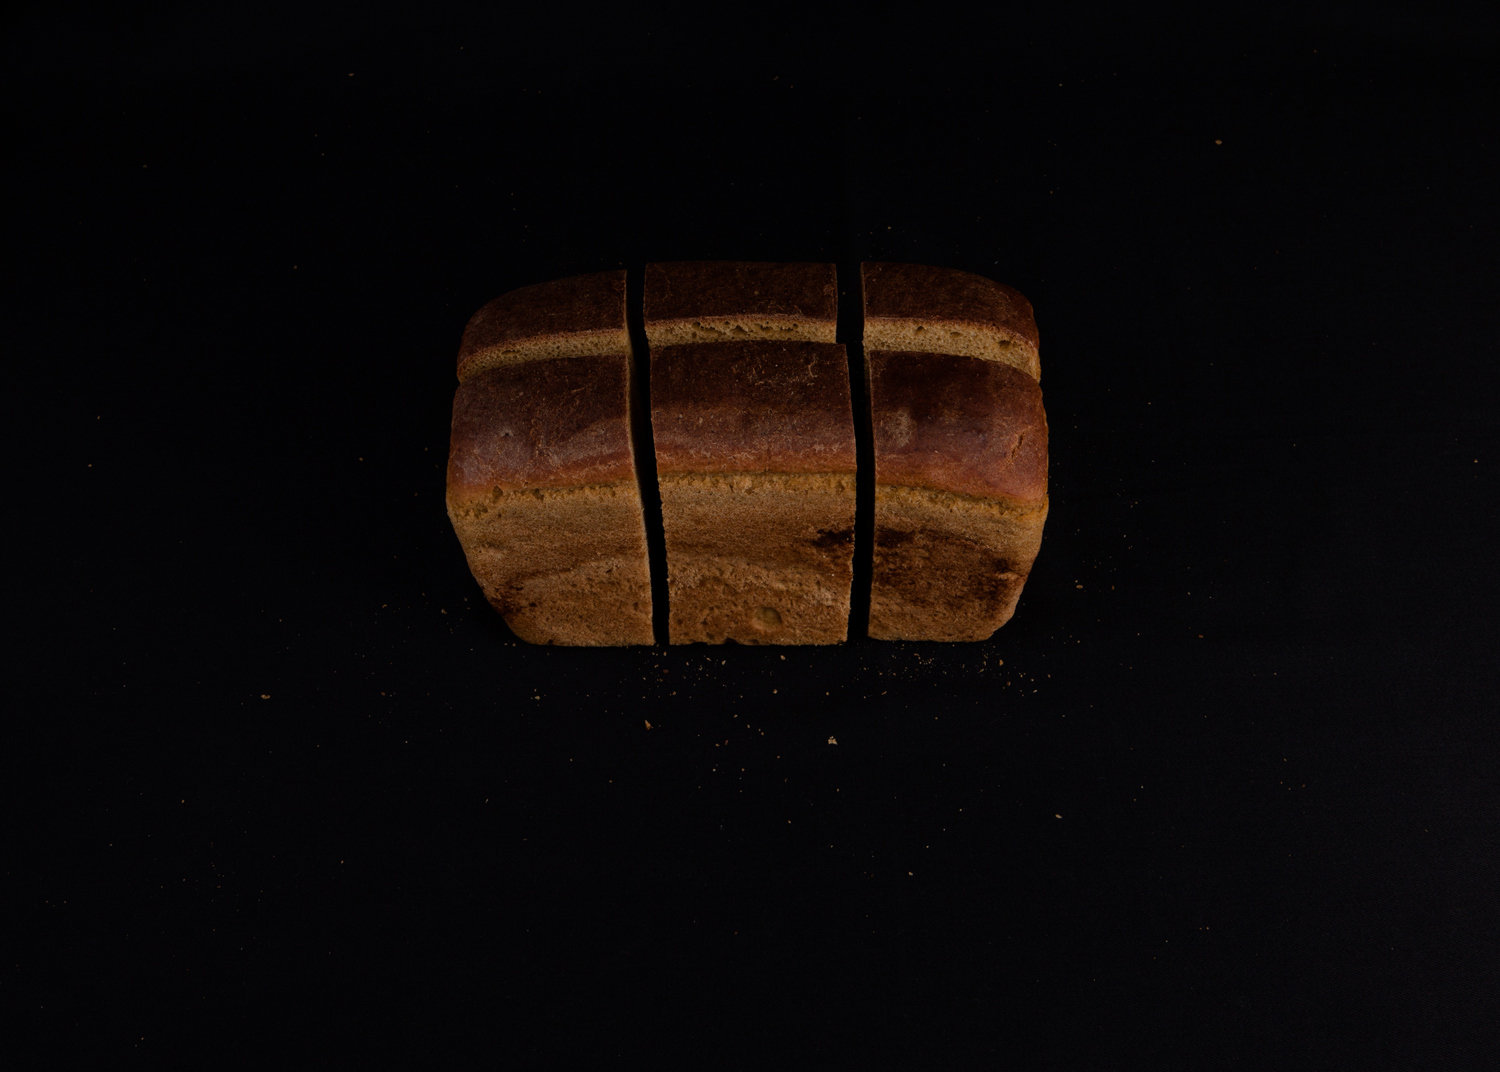 Bread, cut into 6 parts, is served by prisoners in Belarus at every meal. The daily norm of bread in Belarusian prisons is 200 grams. Photo from ongoing